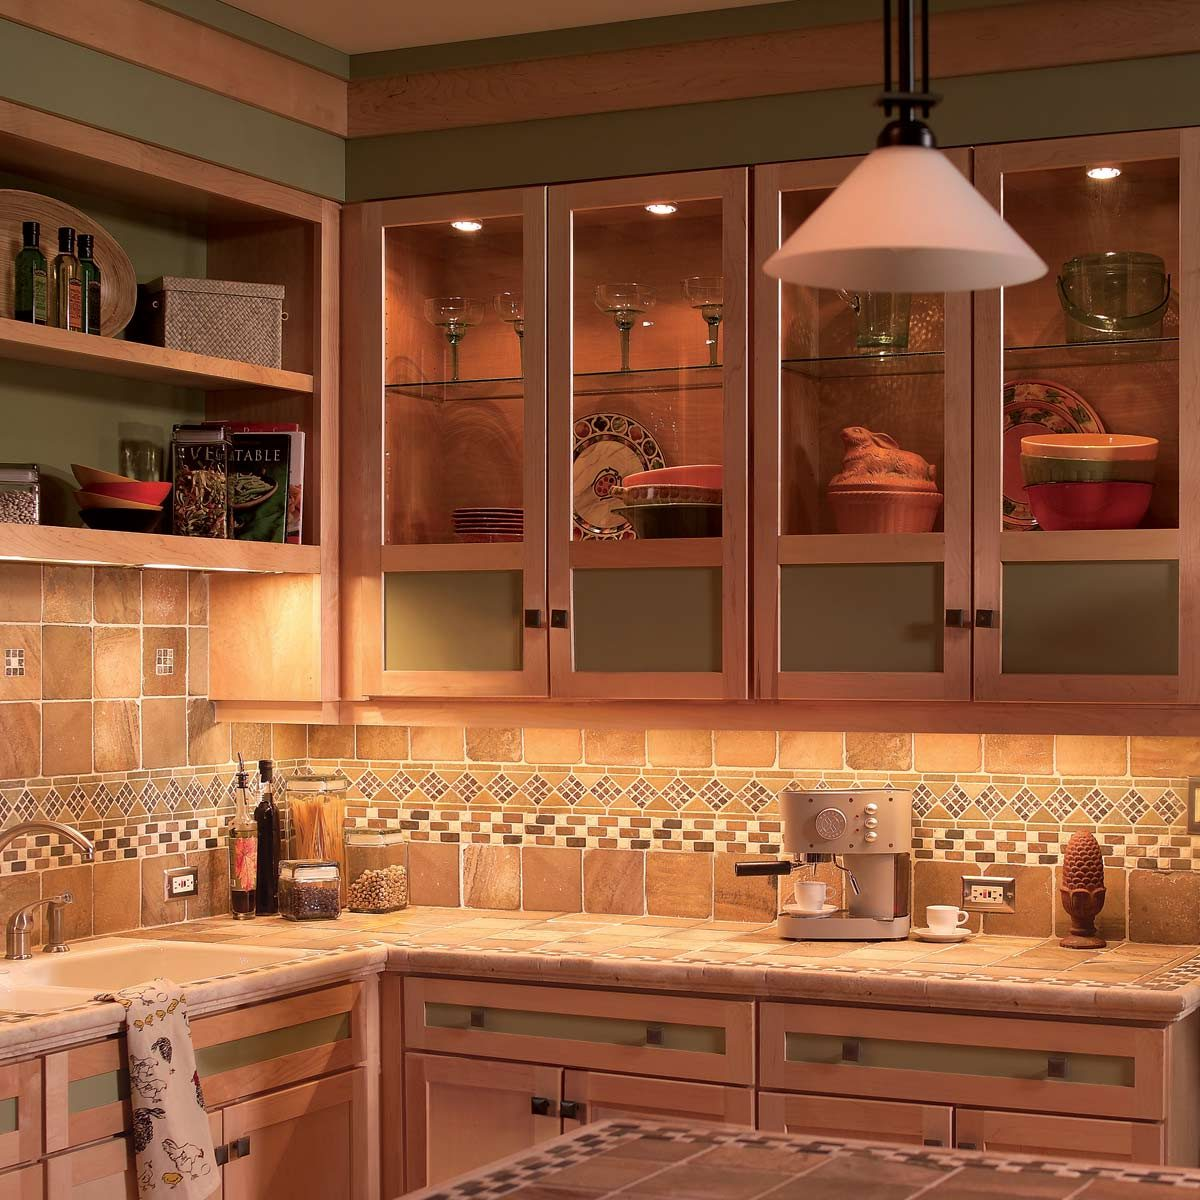 Under Cabinet Lighting In Kitchen How To Install Under Cabinet Lighting In Your Kitchen